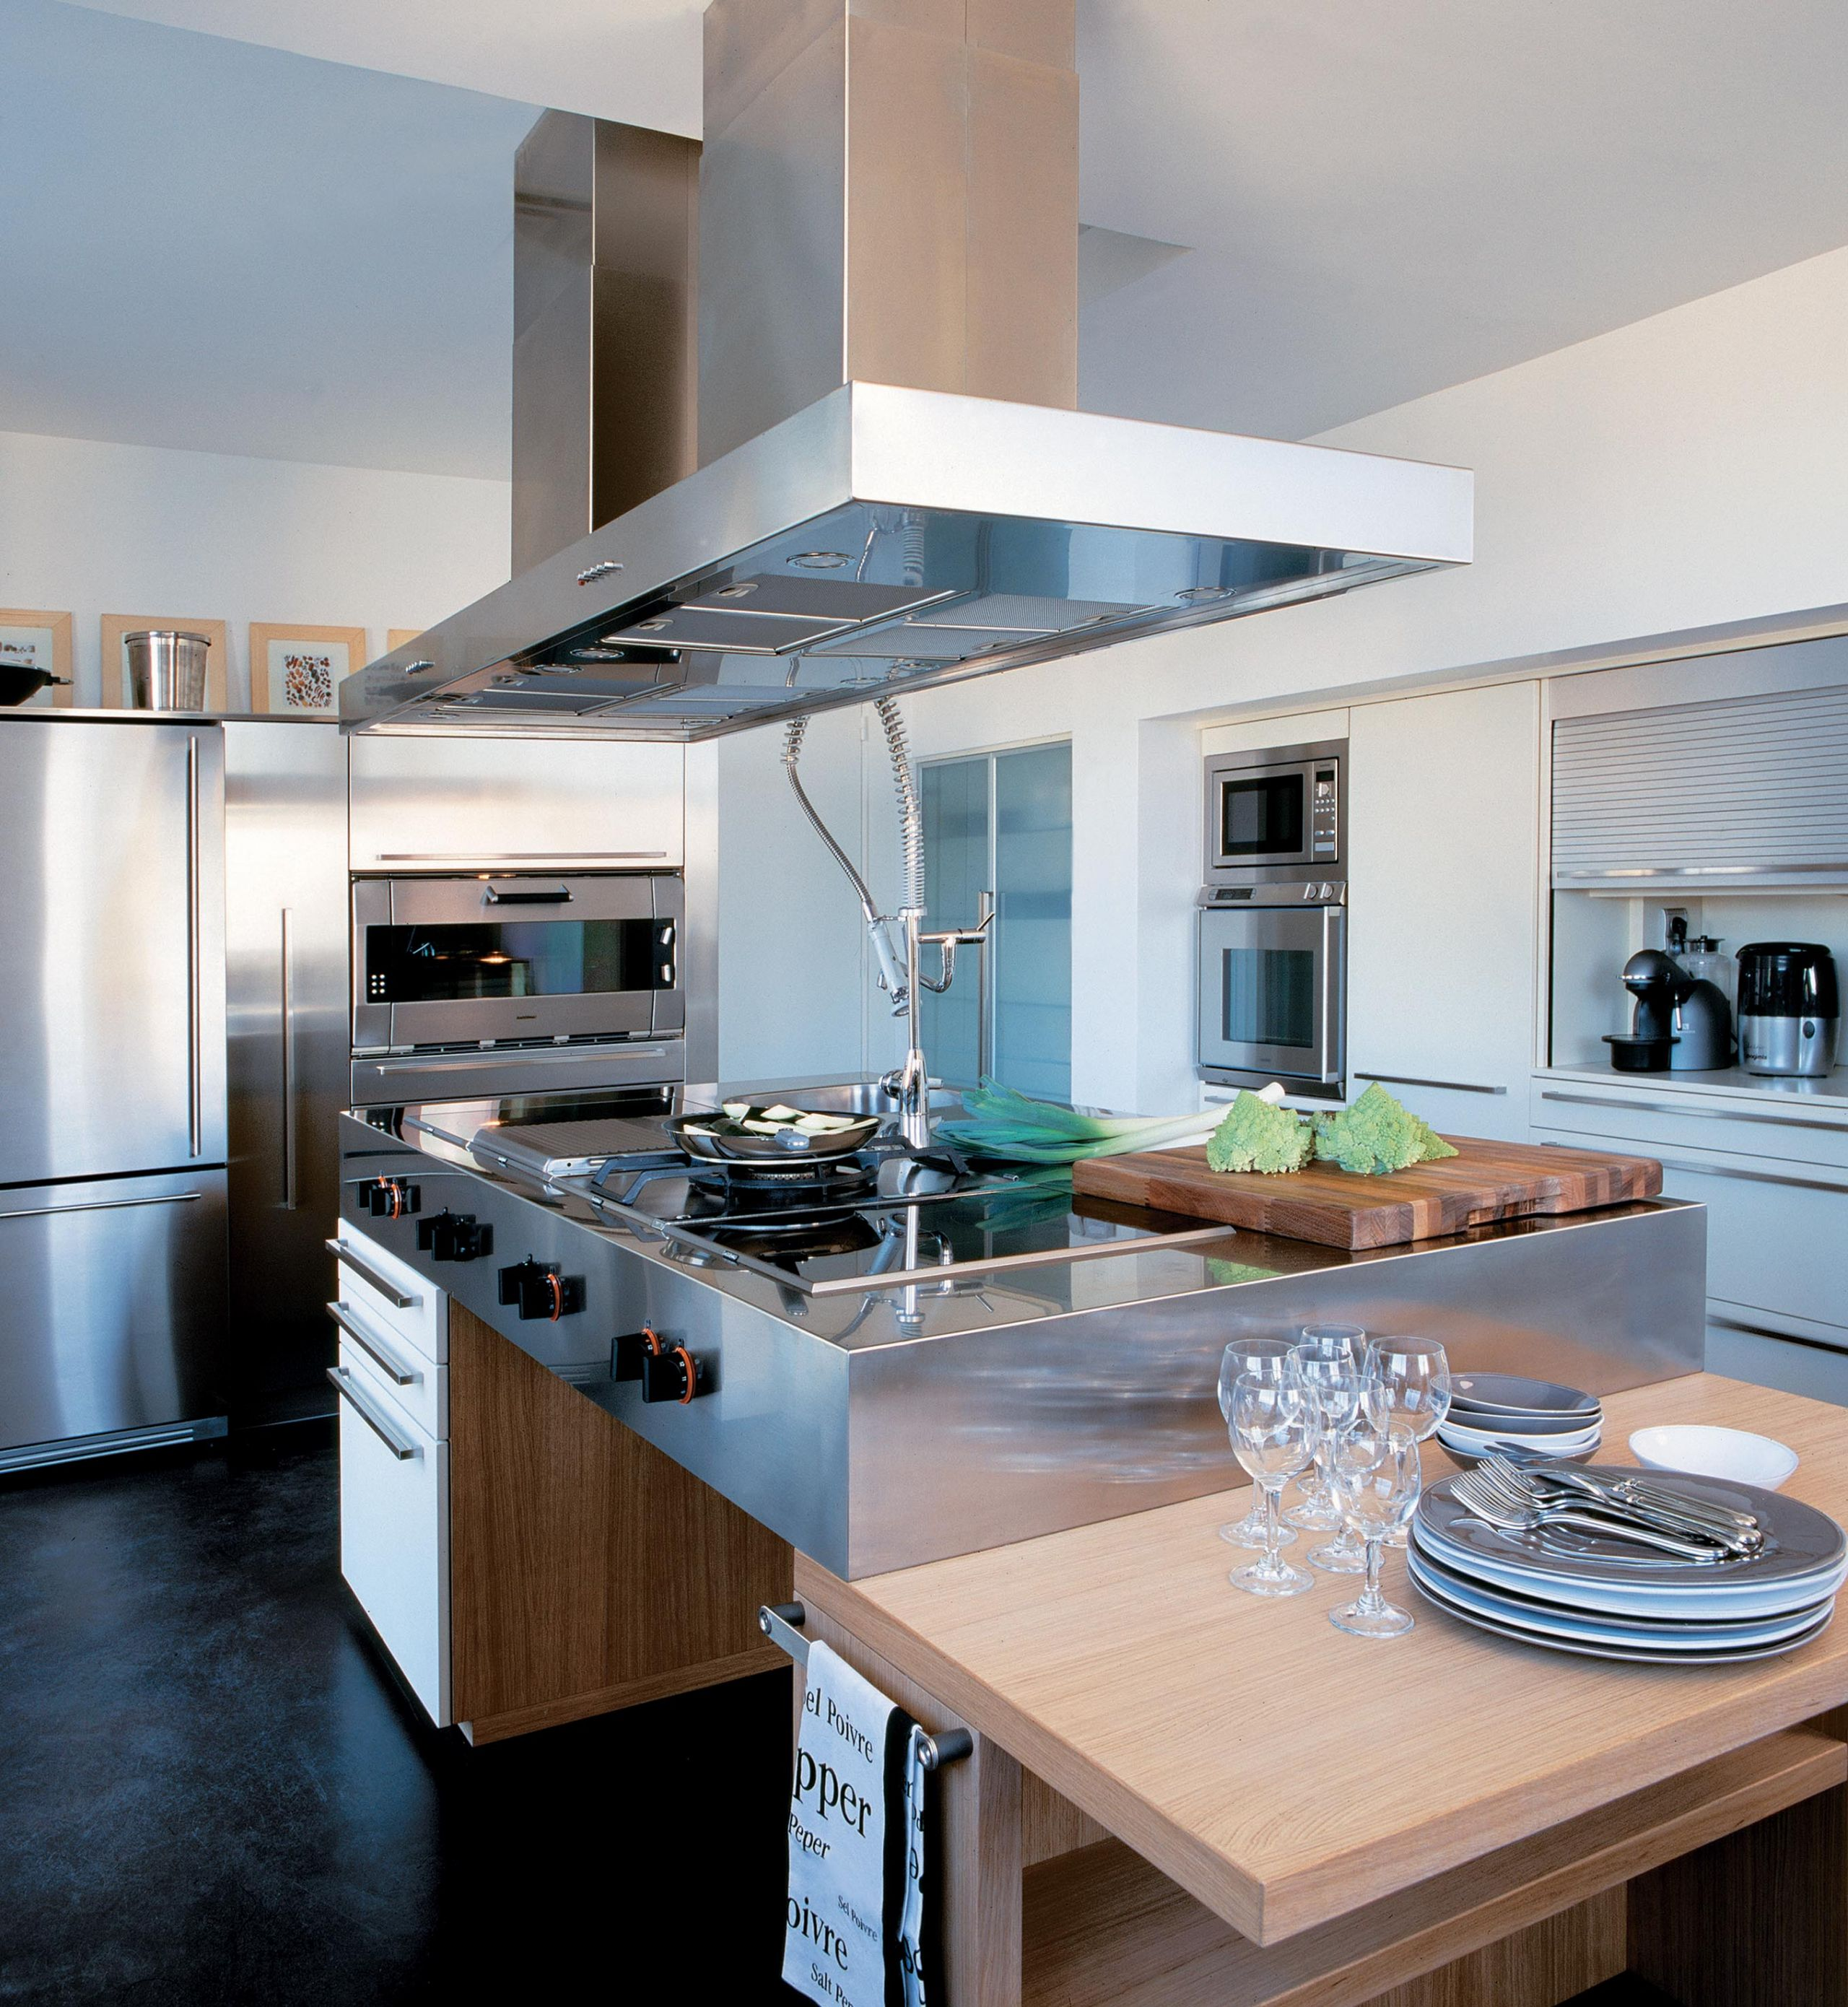 A majestic central island forming the heart of this unique kitchen